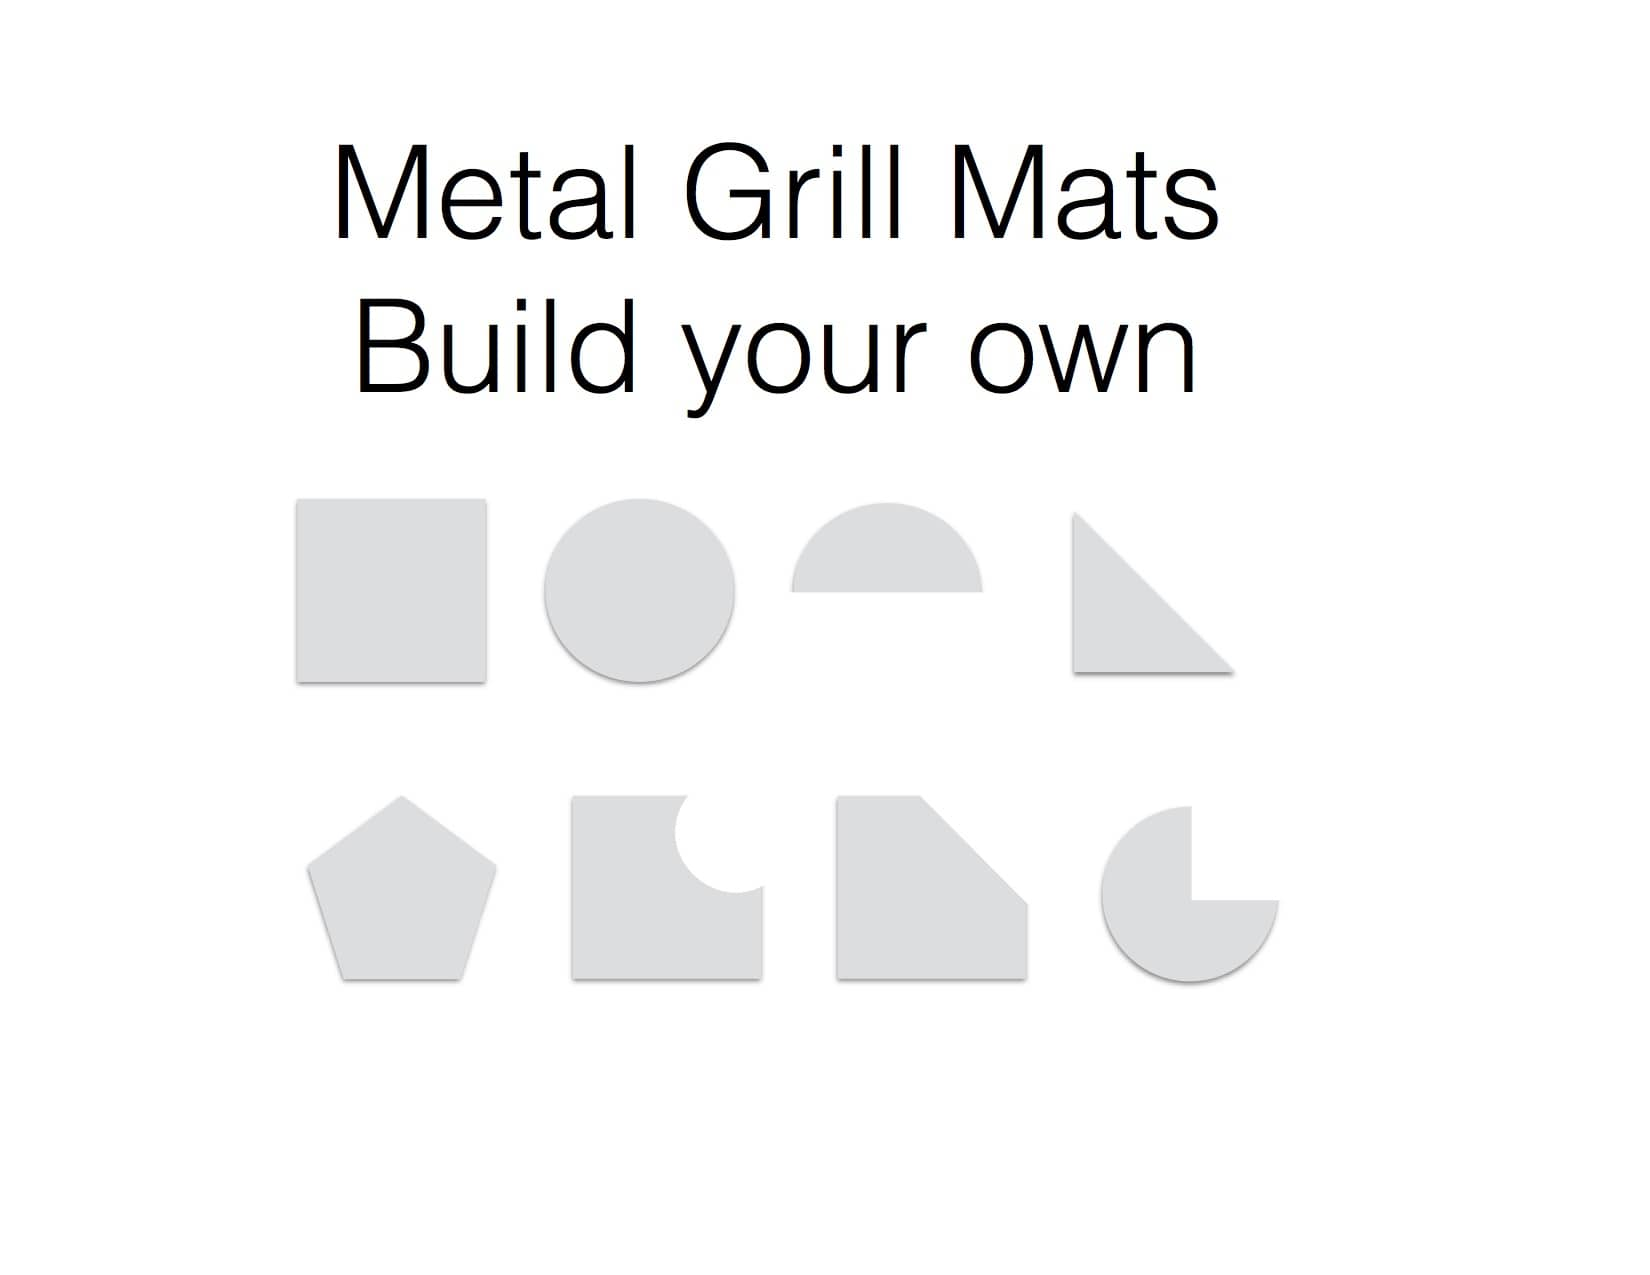 Grill Mat, made out of sheet metal